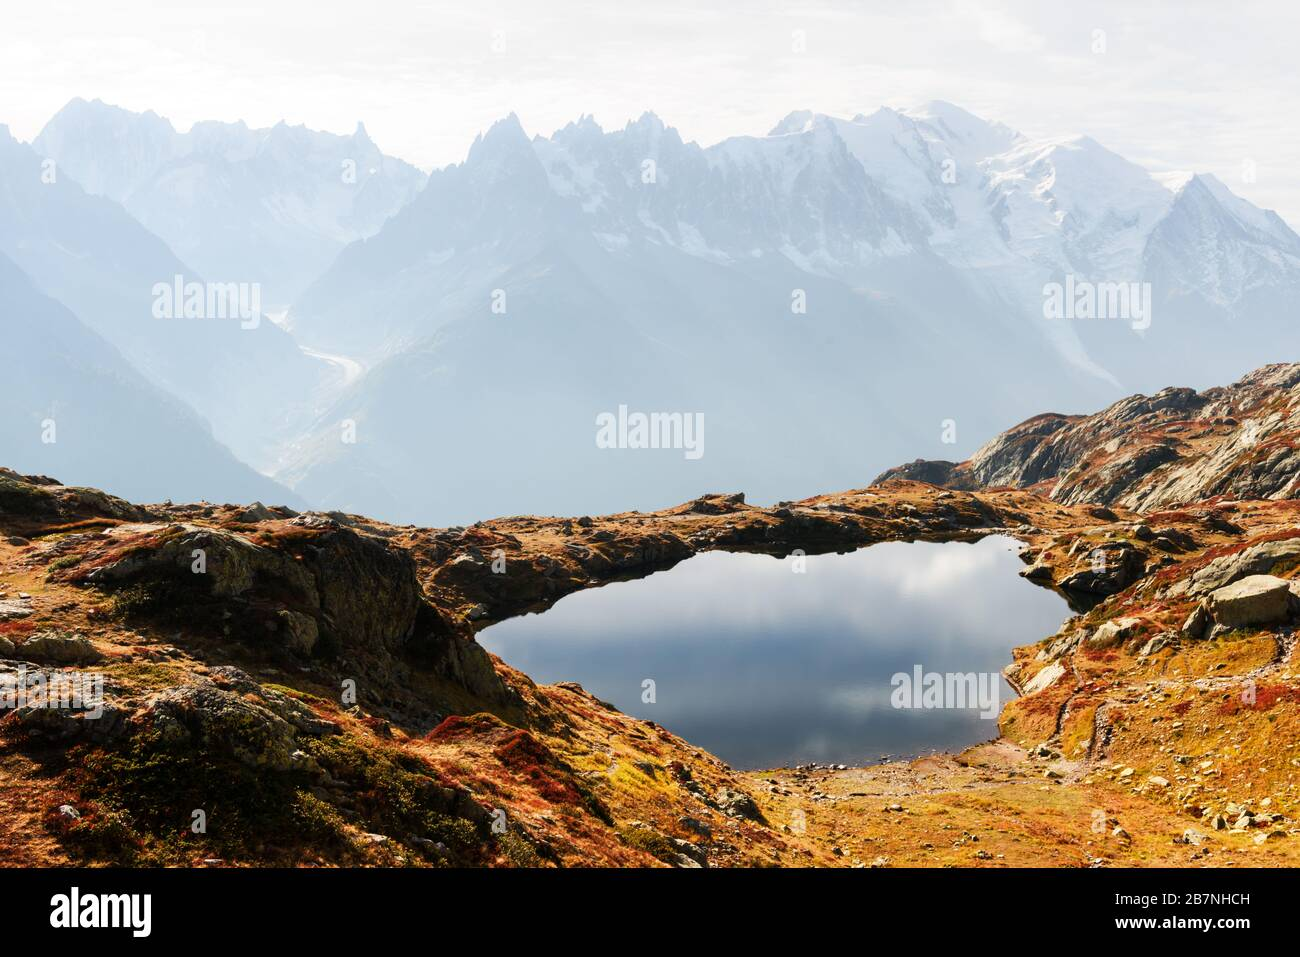 Colourful autumn landscape with Chesery lake (Lac De Cheserys) and snowy Monte Bianco mountains range on background. Vallon de Berard Nature Preserve, Chamonix, France Alps Stock Photo